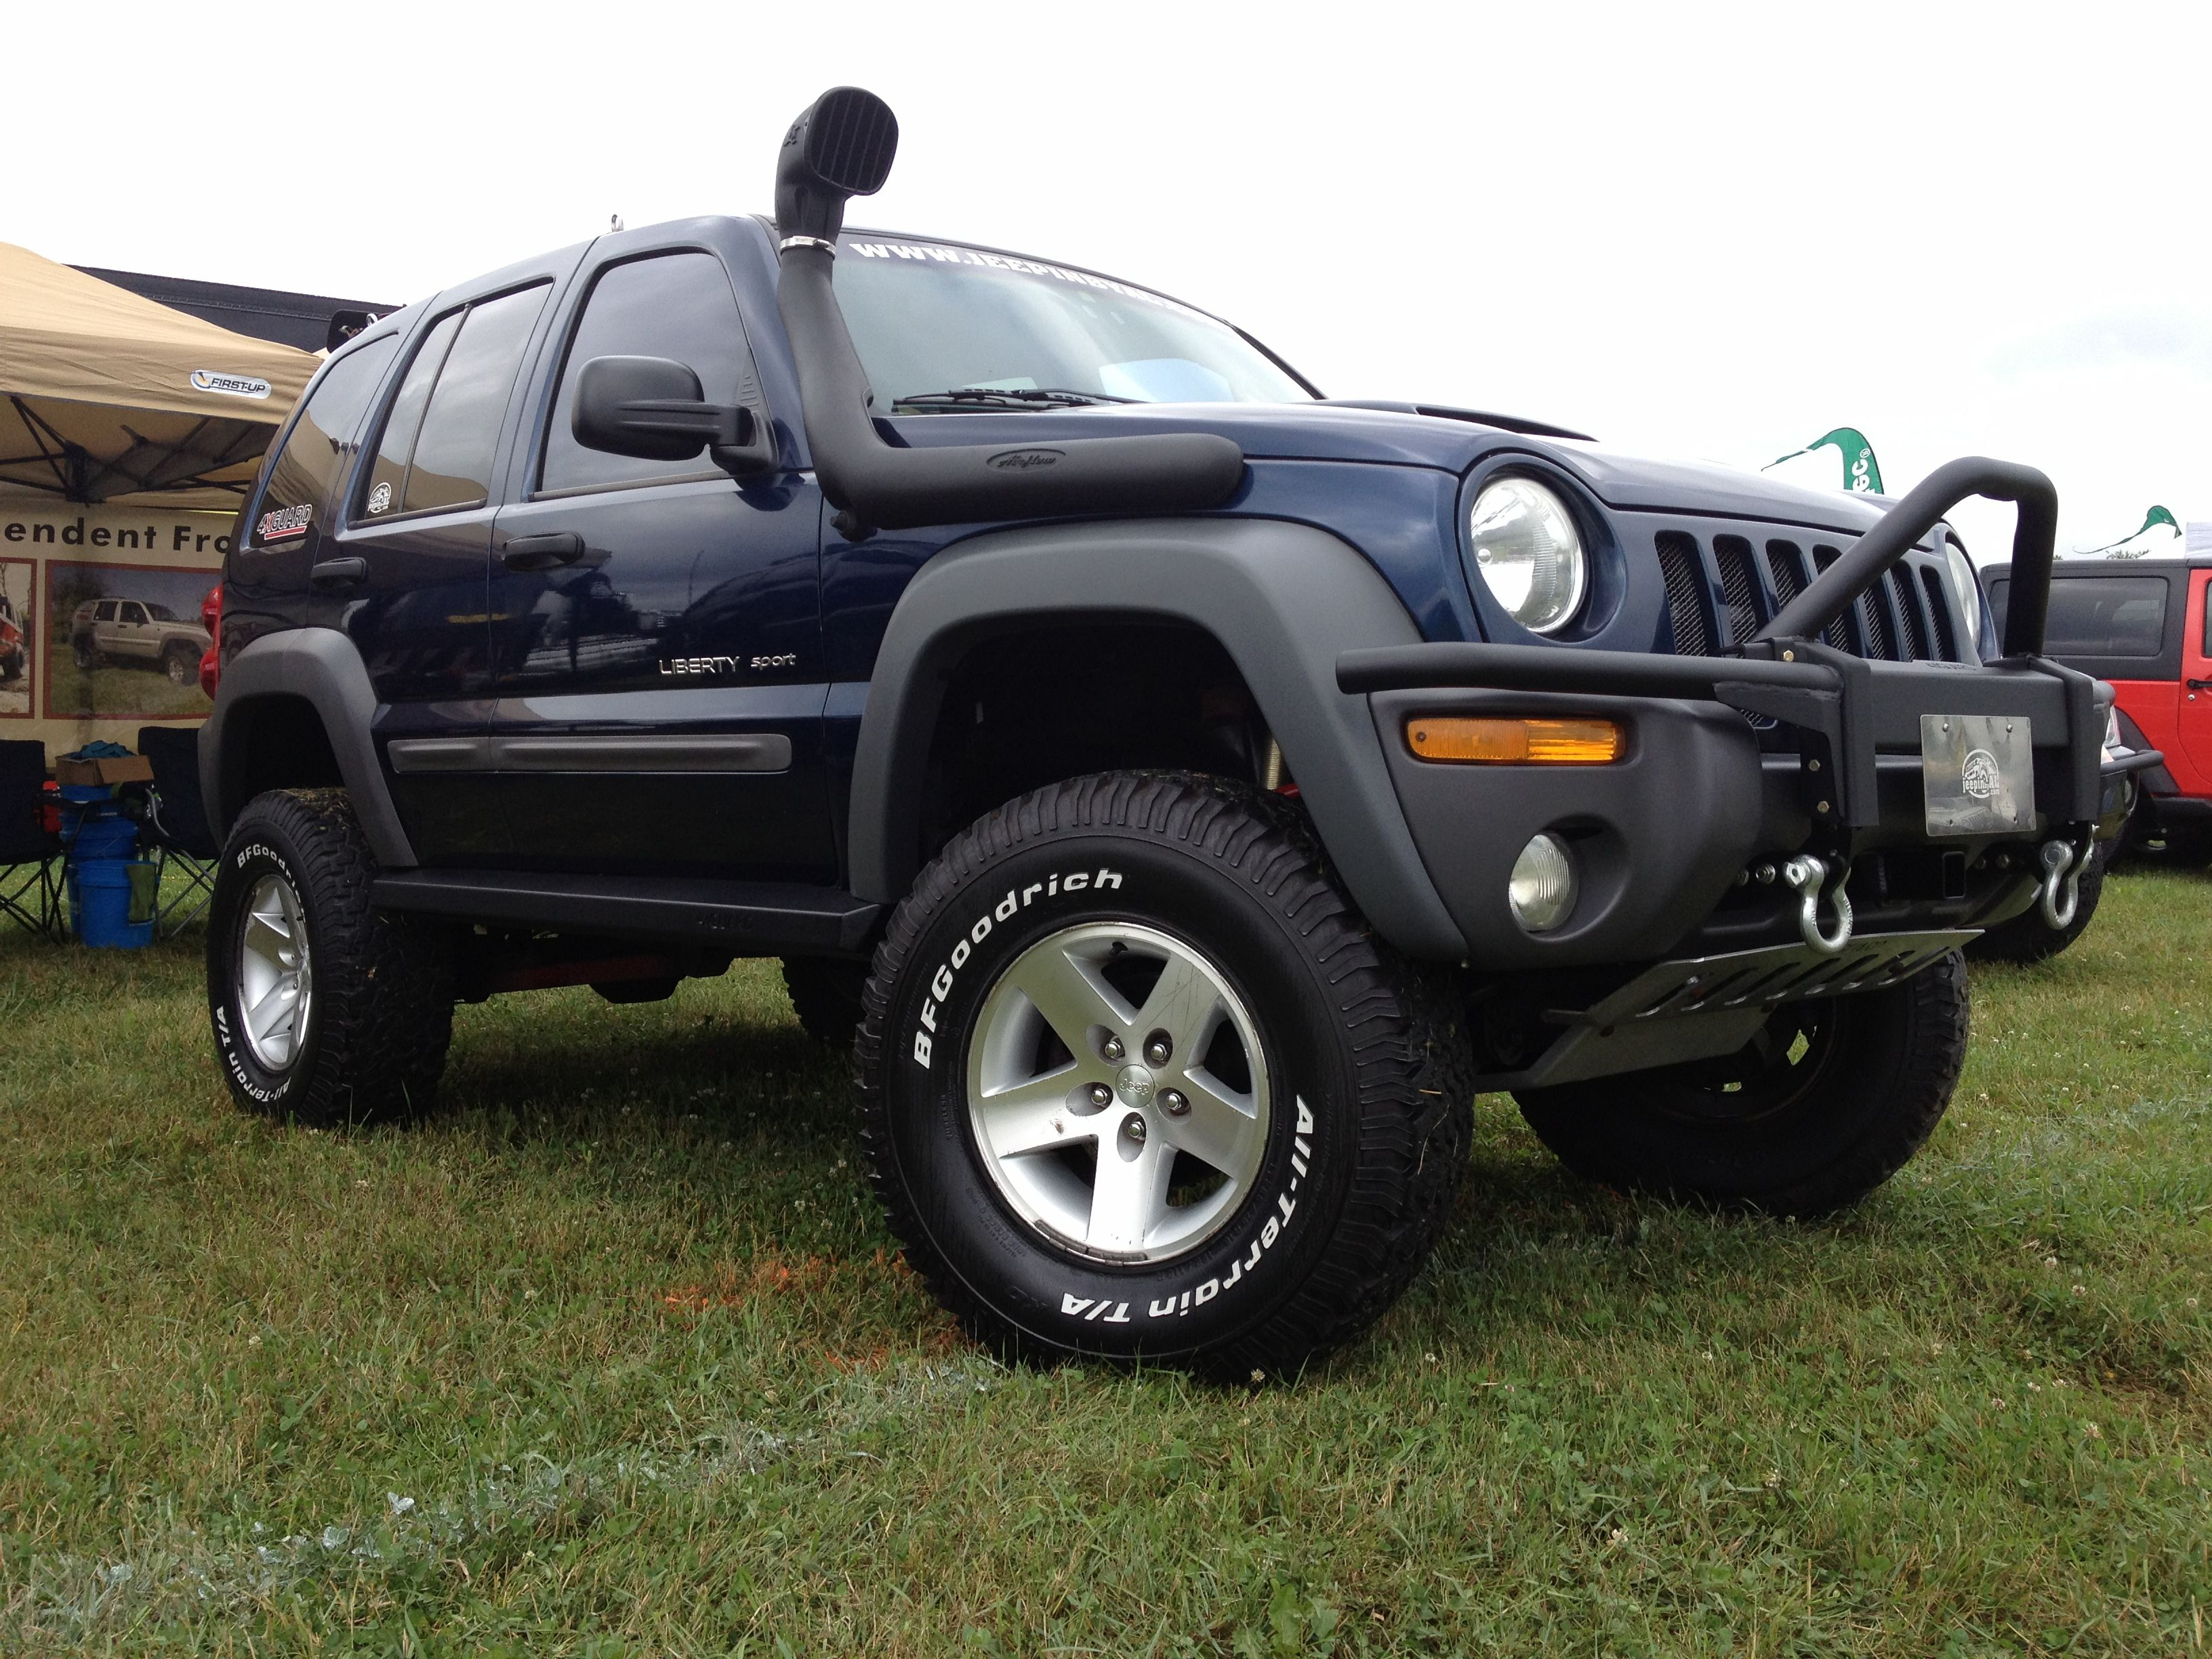 Lifted Jeep Renegade >> Jeep Liberty Renegade Off Road | www.imgkid.com - The Image Kid Has It!